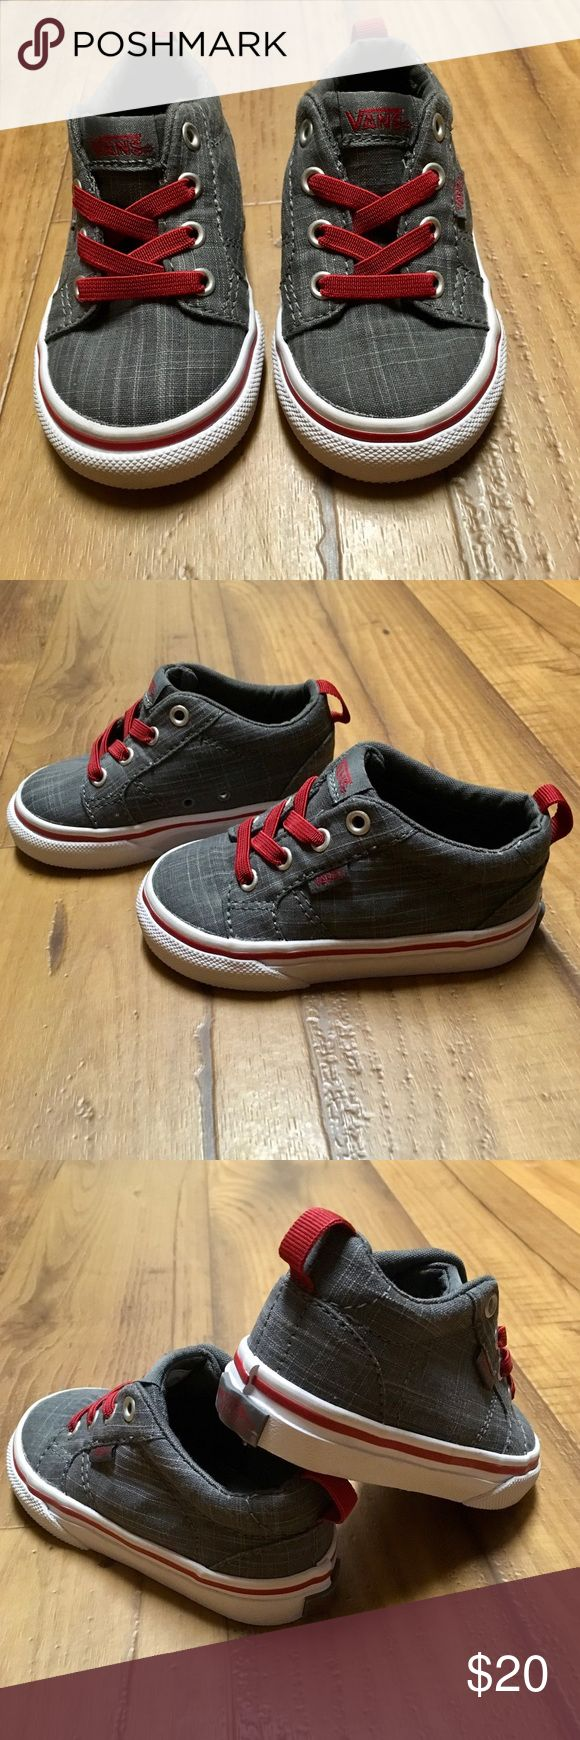 Toddler Vans 5 Toddler Boys shoe size 5 Brand New without tags Vans slip ons.  Smoke/pet free hm Vans Shoes Sneakers